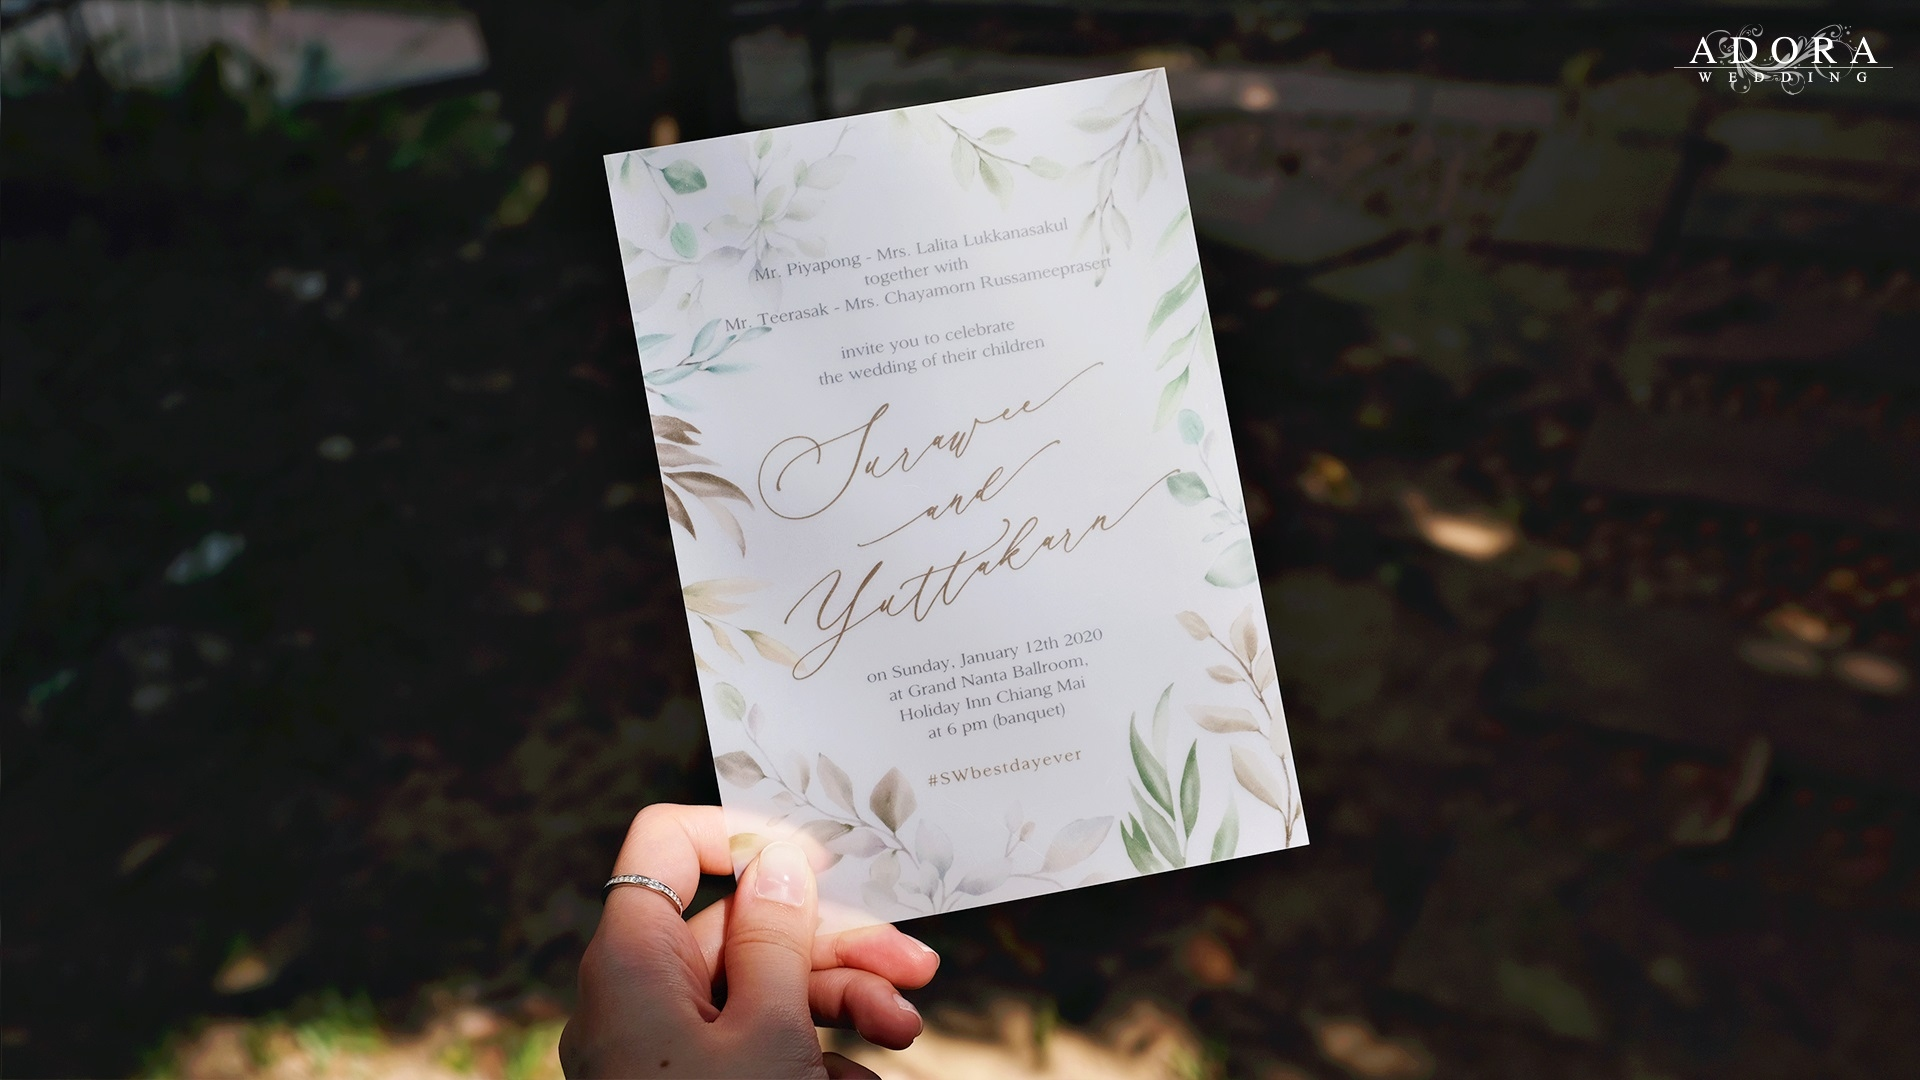 B121LM-wedding-card-5